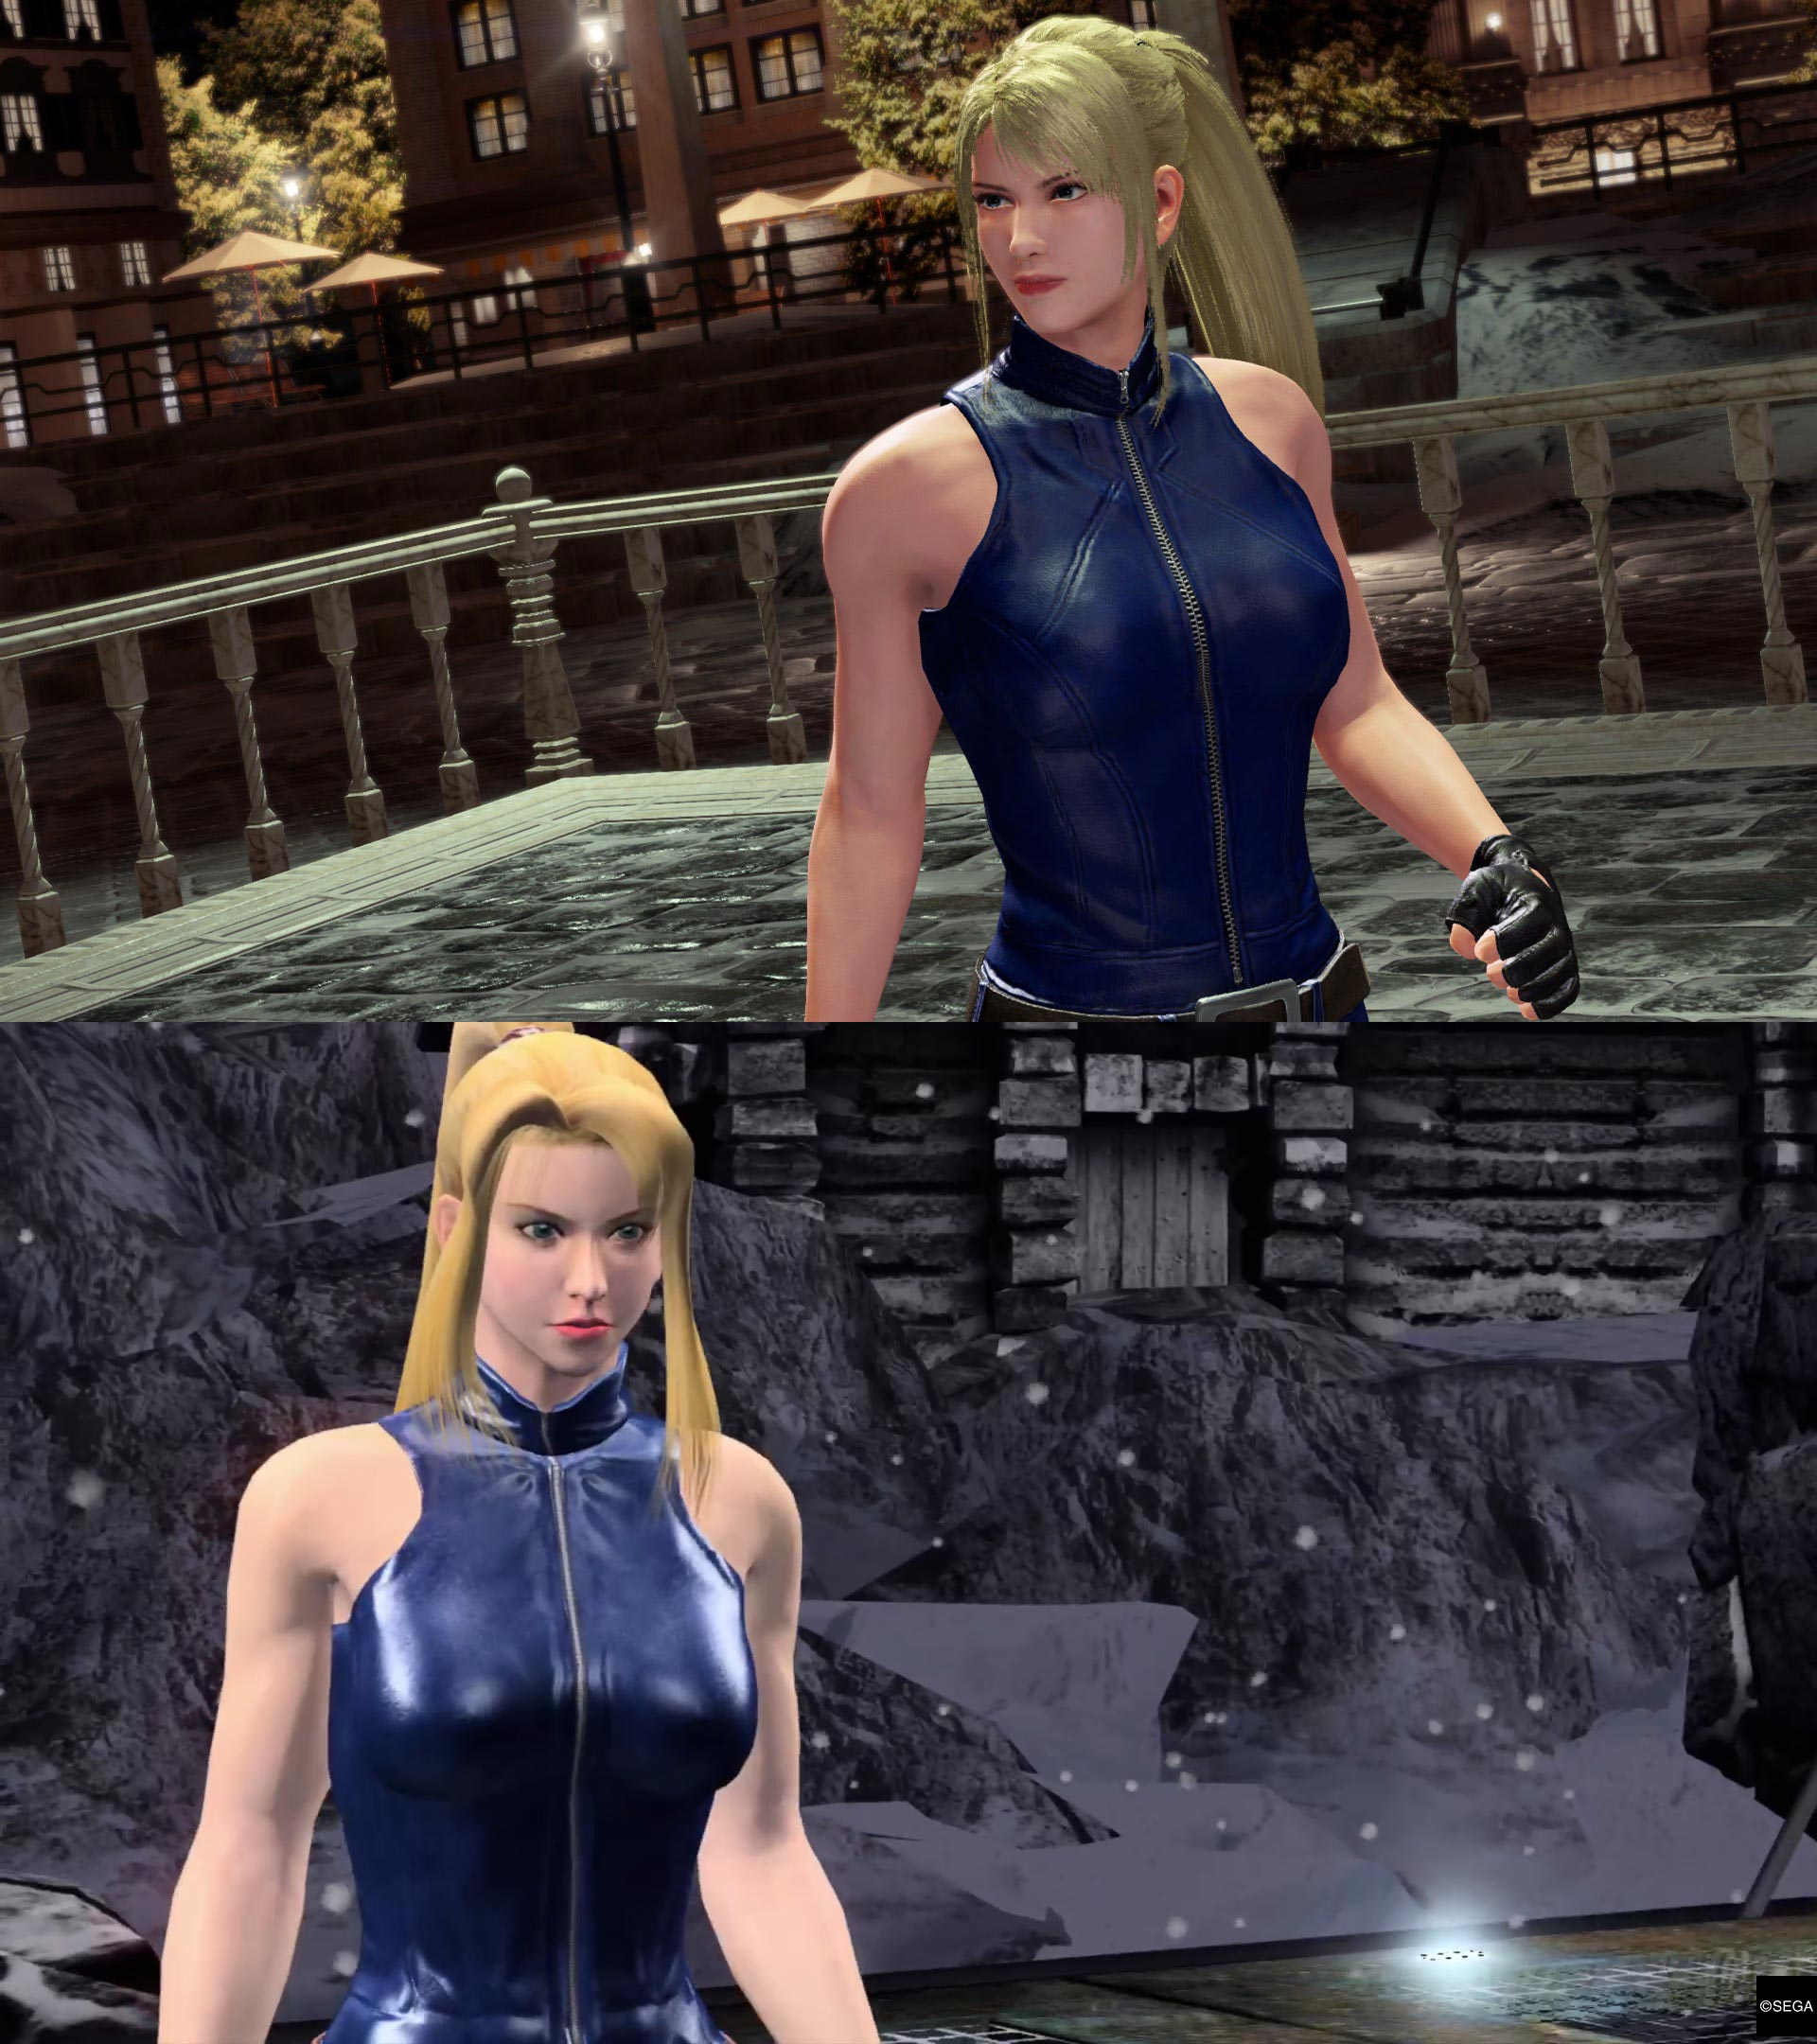 Virtua Fighter 5 graphics comparison 4 out of 5 image gallery